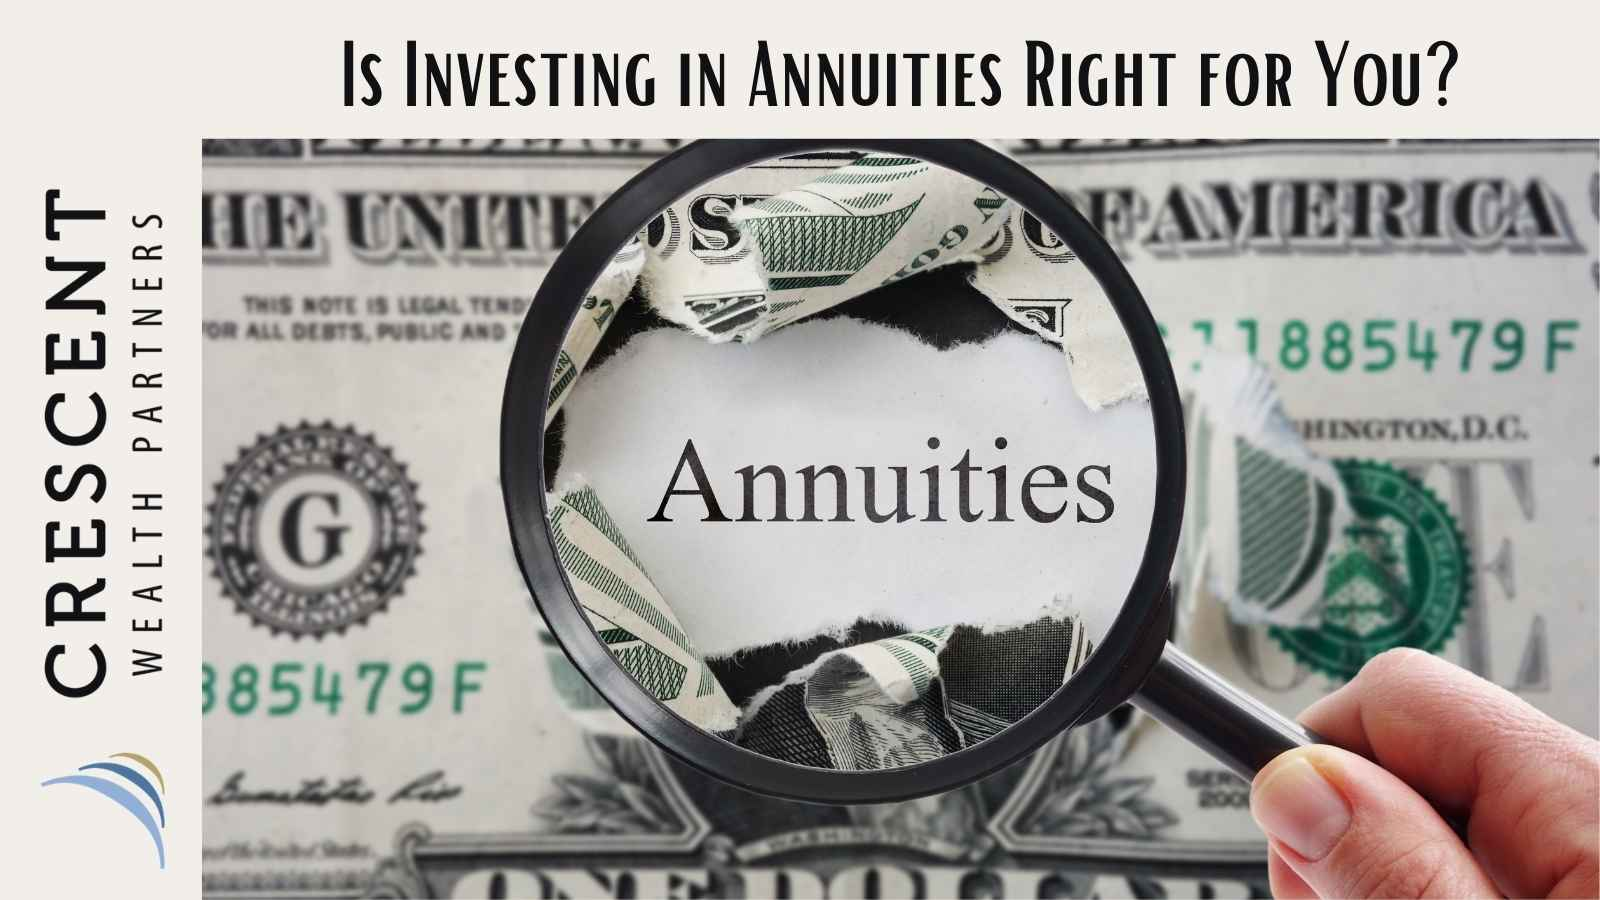 Is Investing in Annuities Right for You?